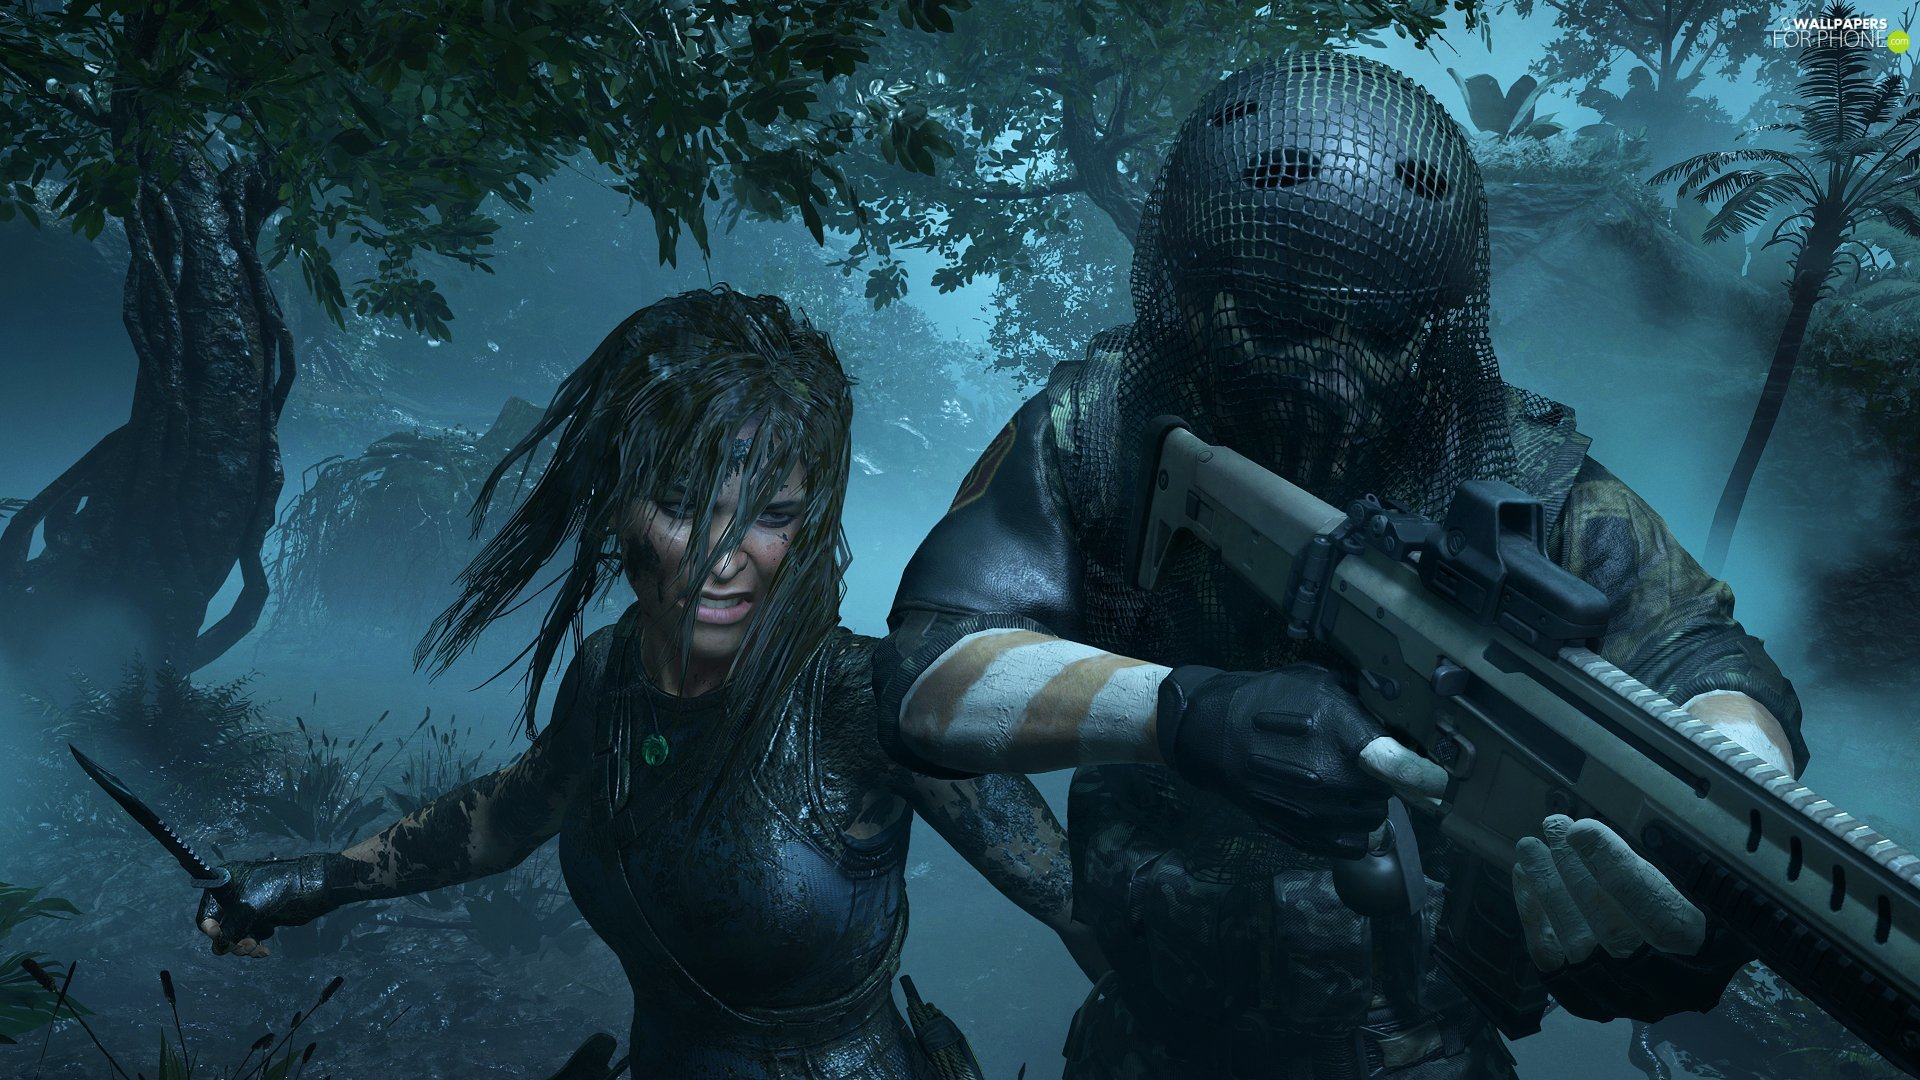 game, Lara Croft, soldier, Shadow of the Tomb Raider